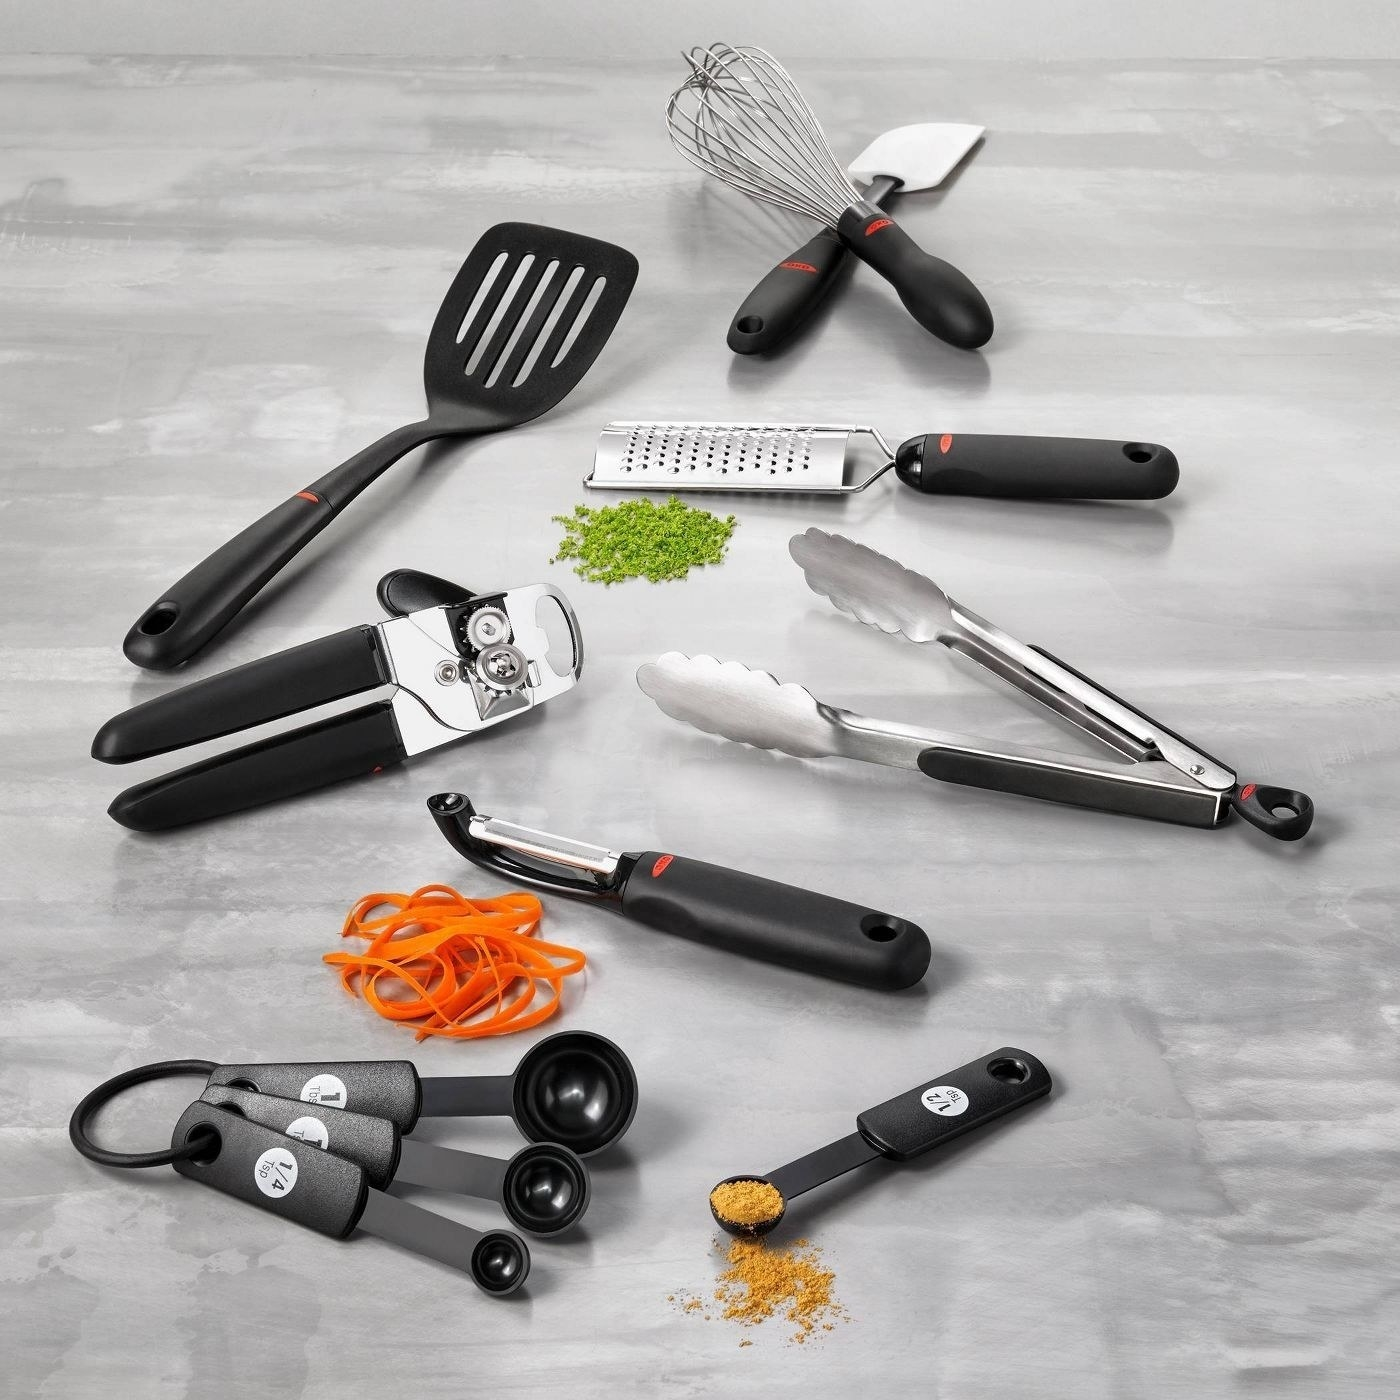 A set of OXO cooking tools like measuring spoons, can opener, tongs, microplane grater, whisk, and spatula.